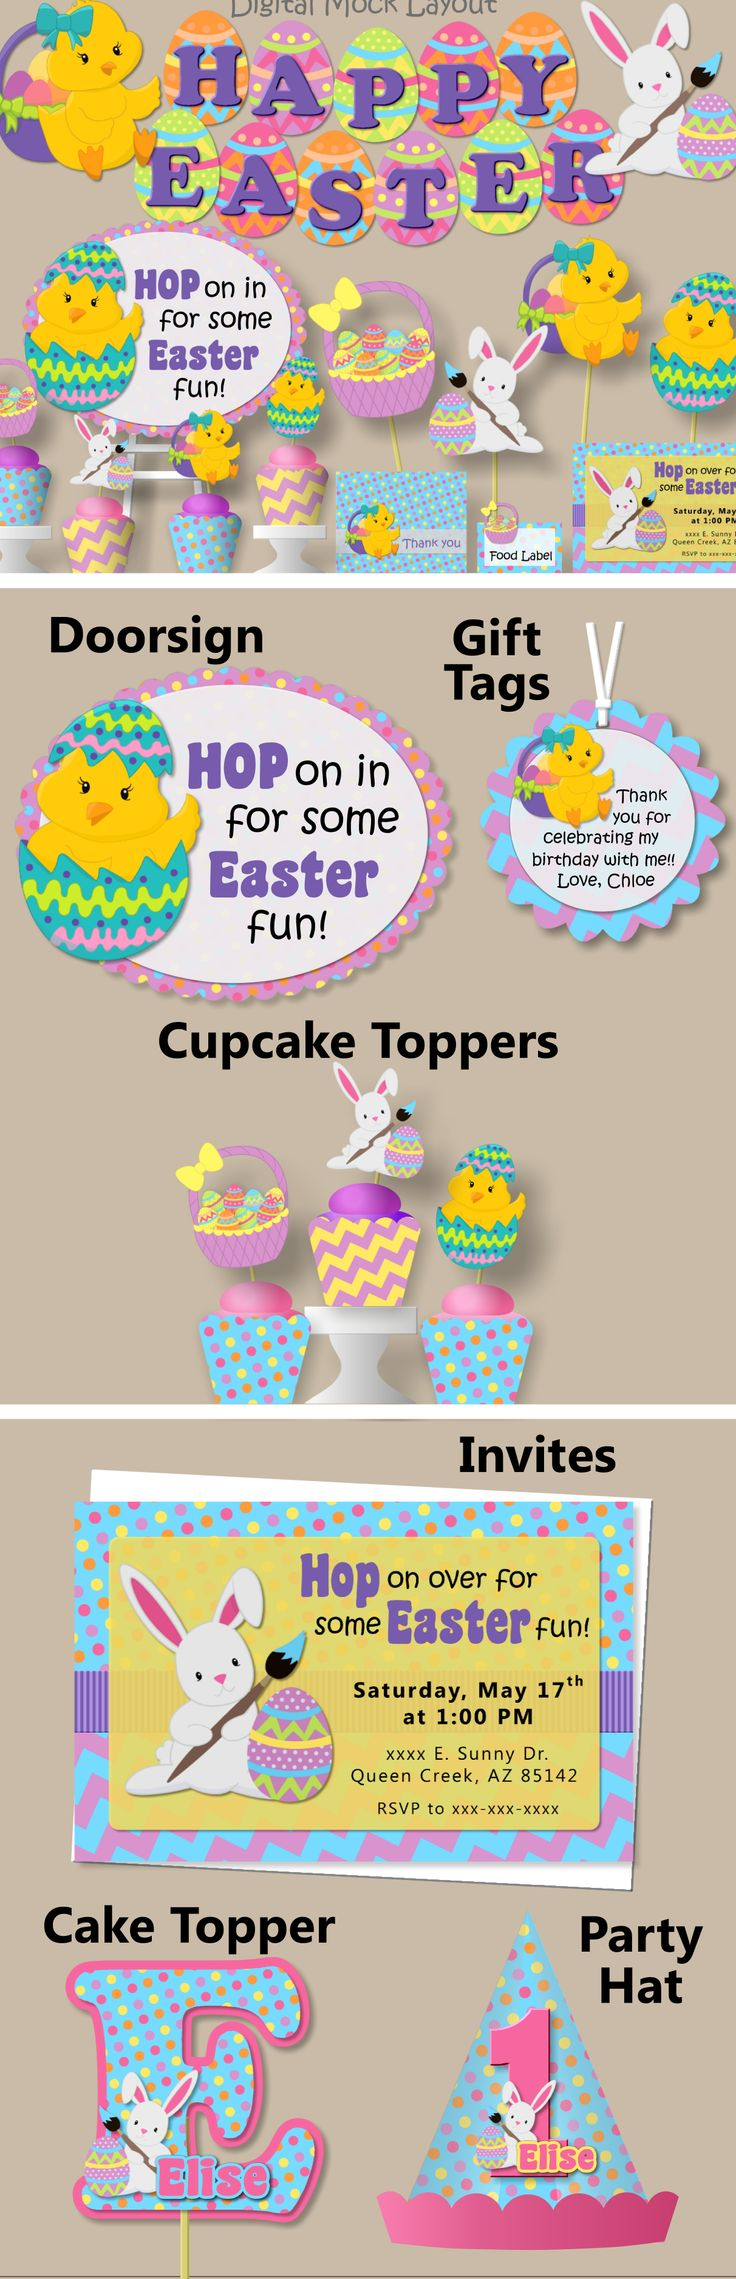 Easter Birthday Party Decorations - Invitations, Banner, Cupcake Toppers, Cake Topper, Favor Tags #bcpaperdesigns